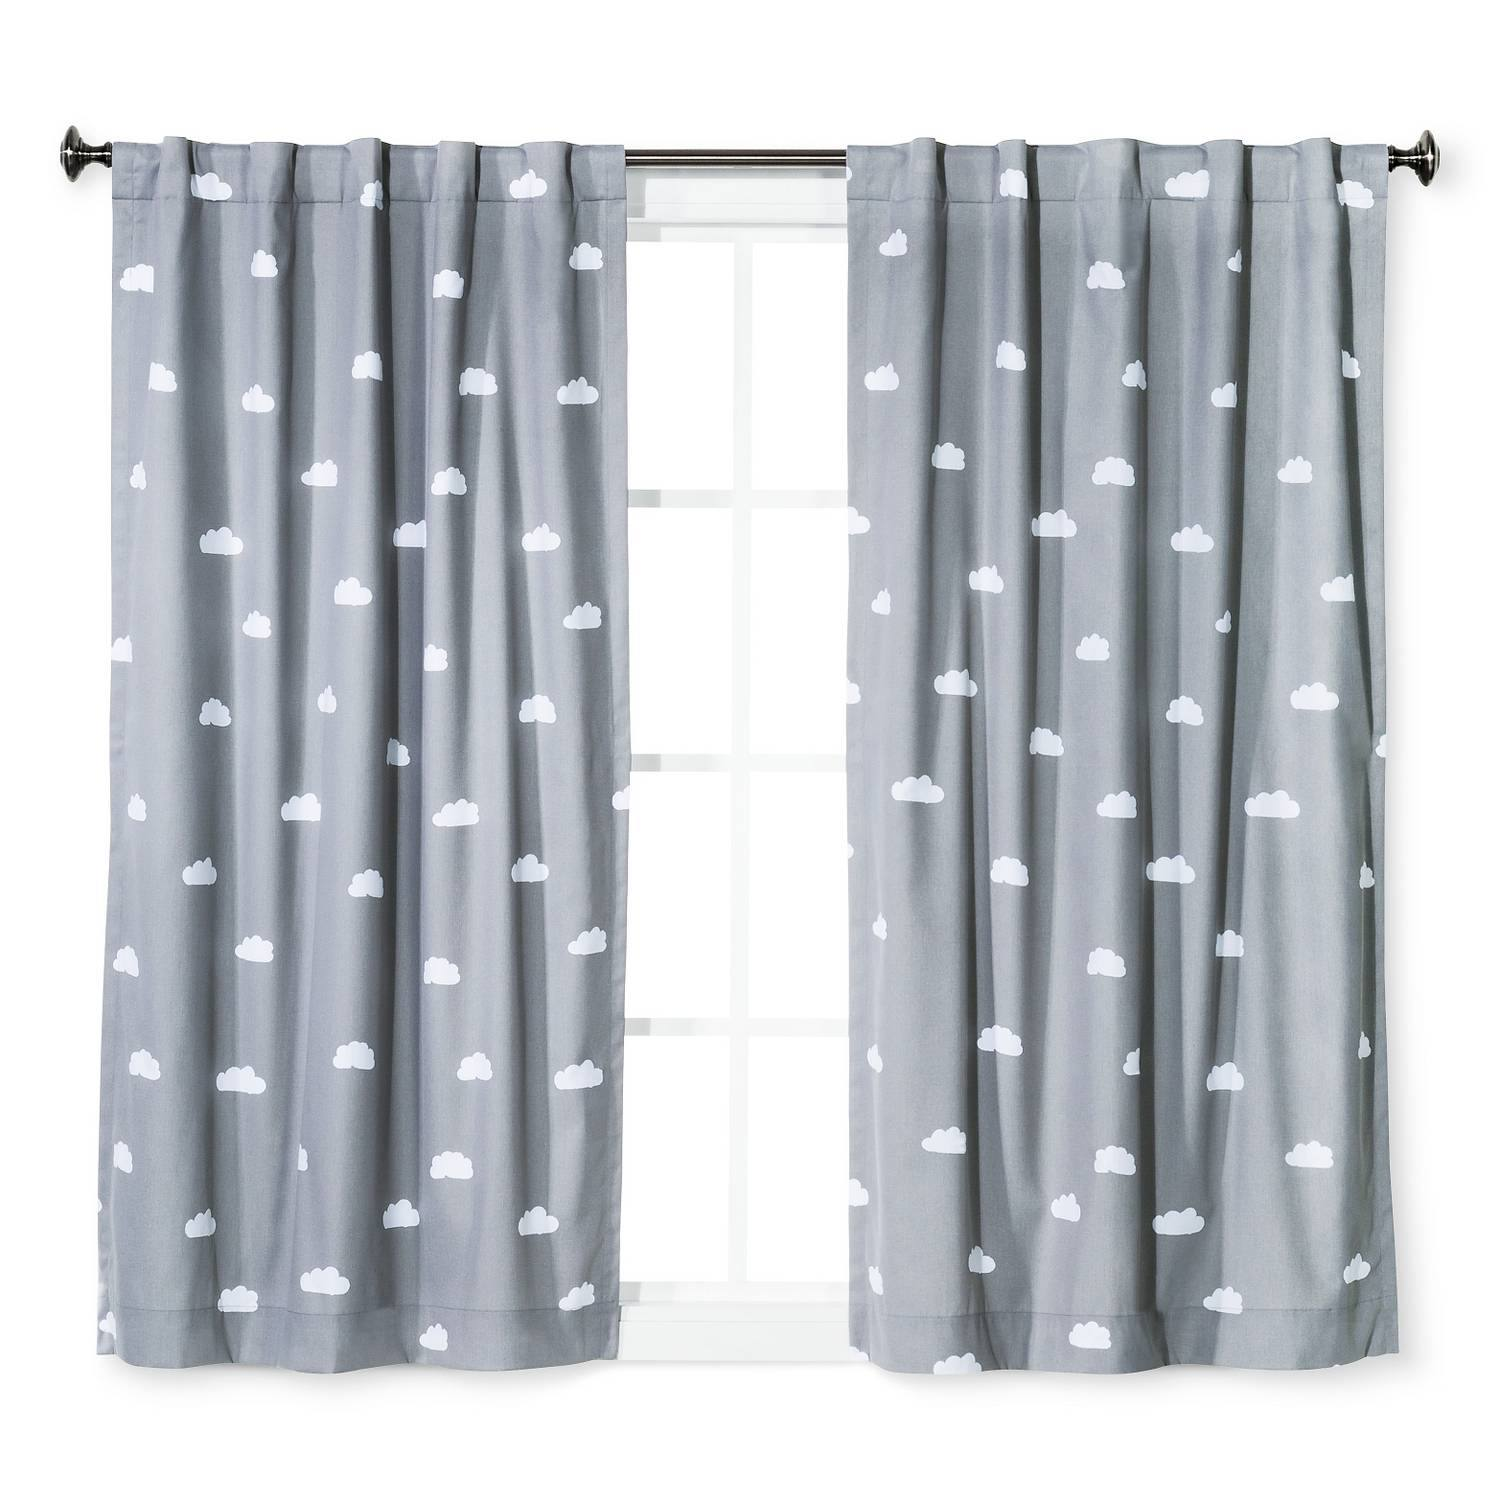 standard drape panel to fashions curtains home lengths amazon dp com darkening braiden elrene hang inch how hanging window guide drapes room